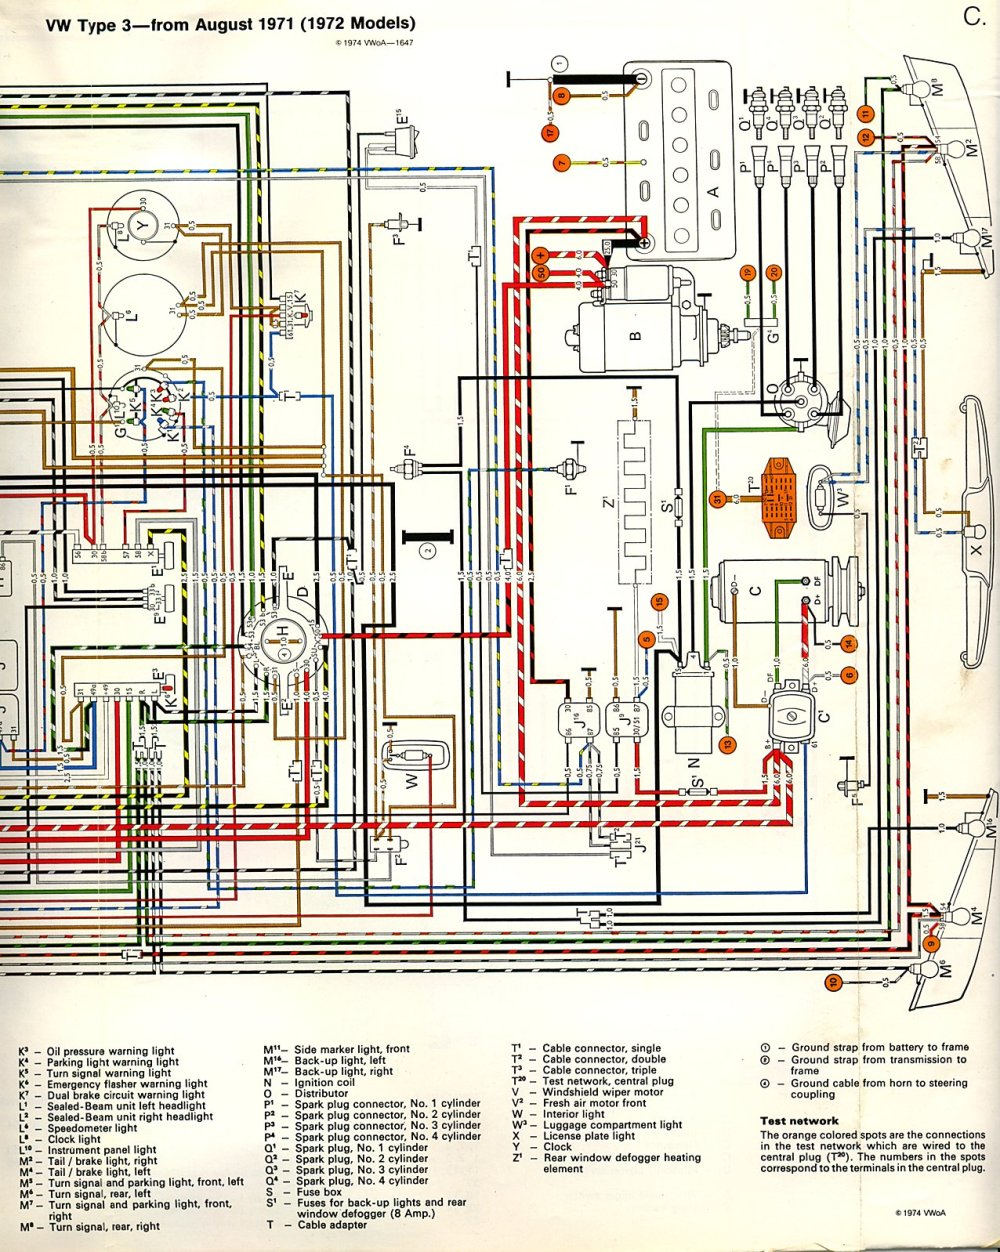 medium resolution of 1973 suzuki wiring diagram basic electronics wiring diagram1973 suzuki wiring diagram wiring diagramthesamba com type 3